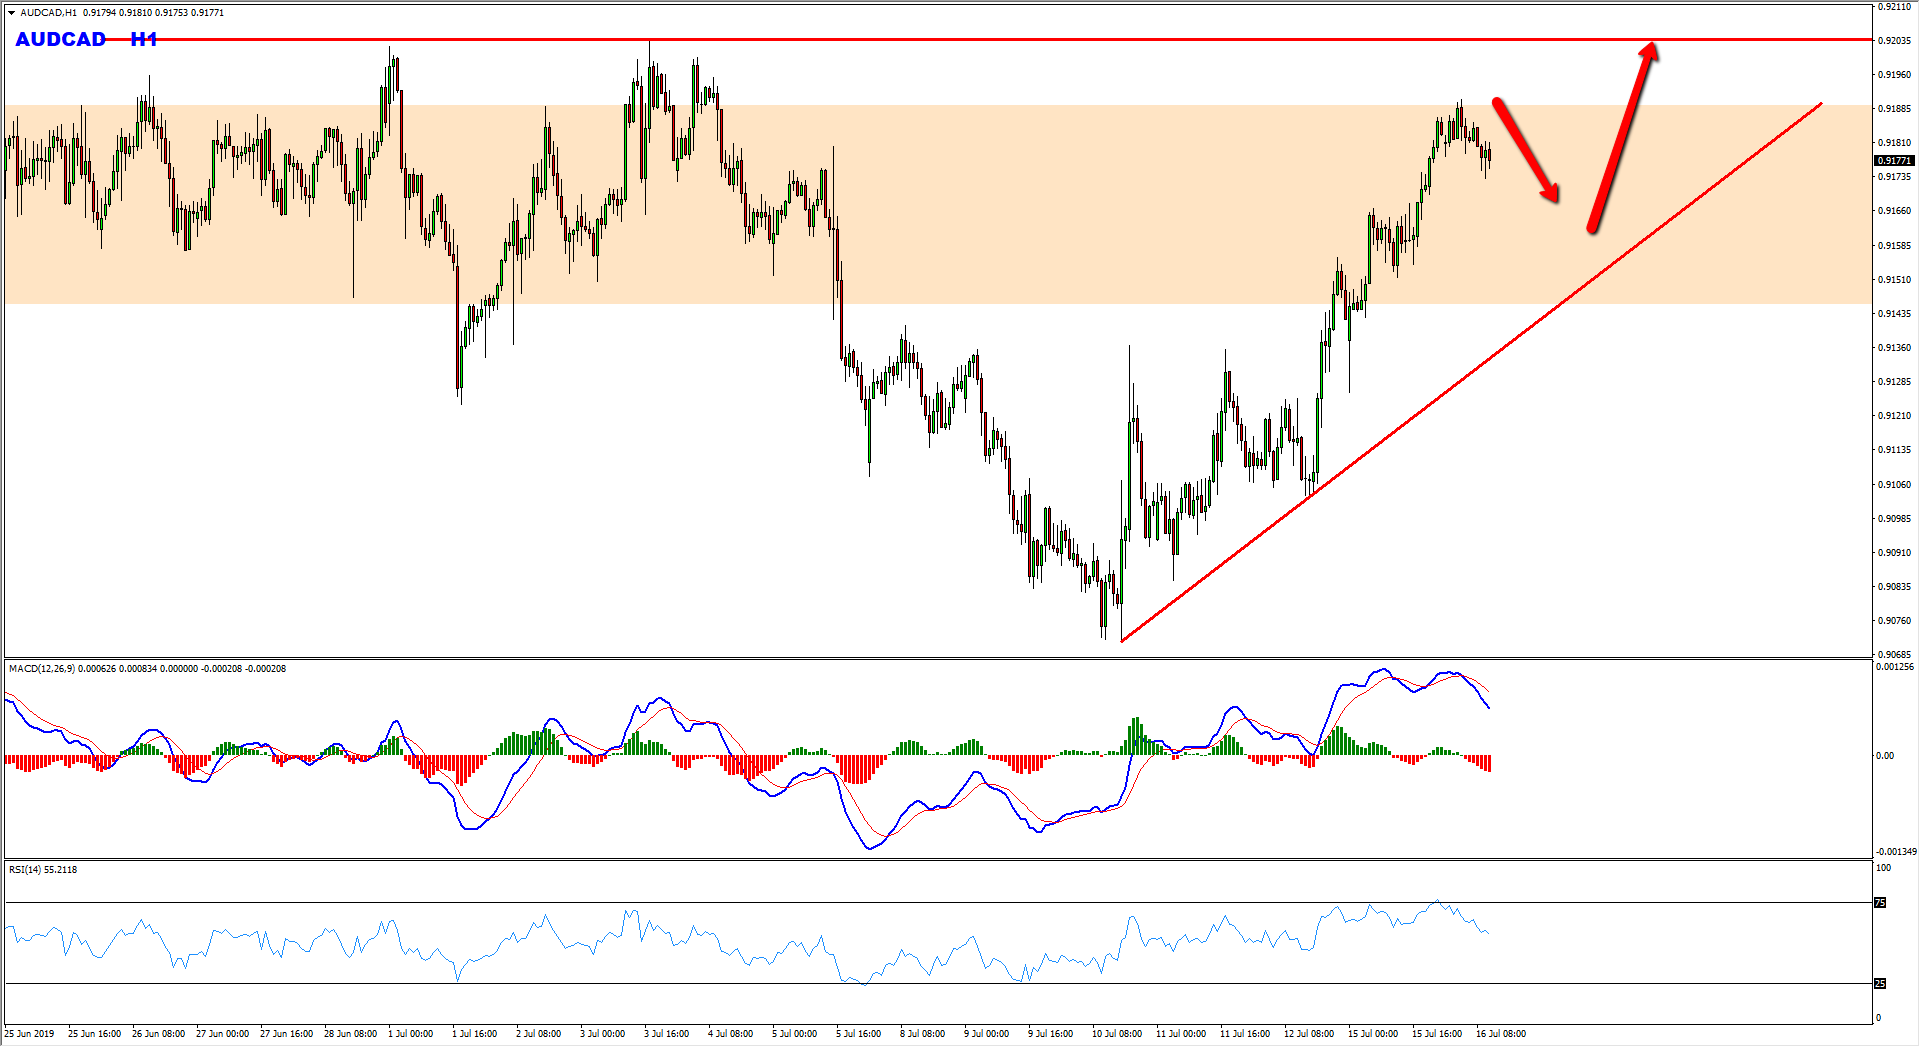 AUDCAD Bullish Opportunity Forming At The Moment